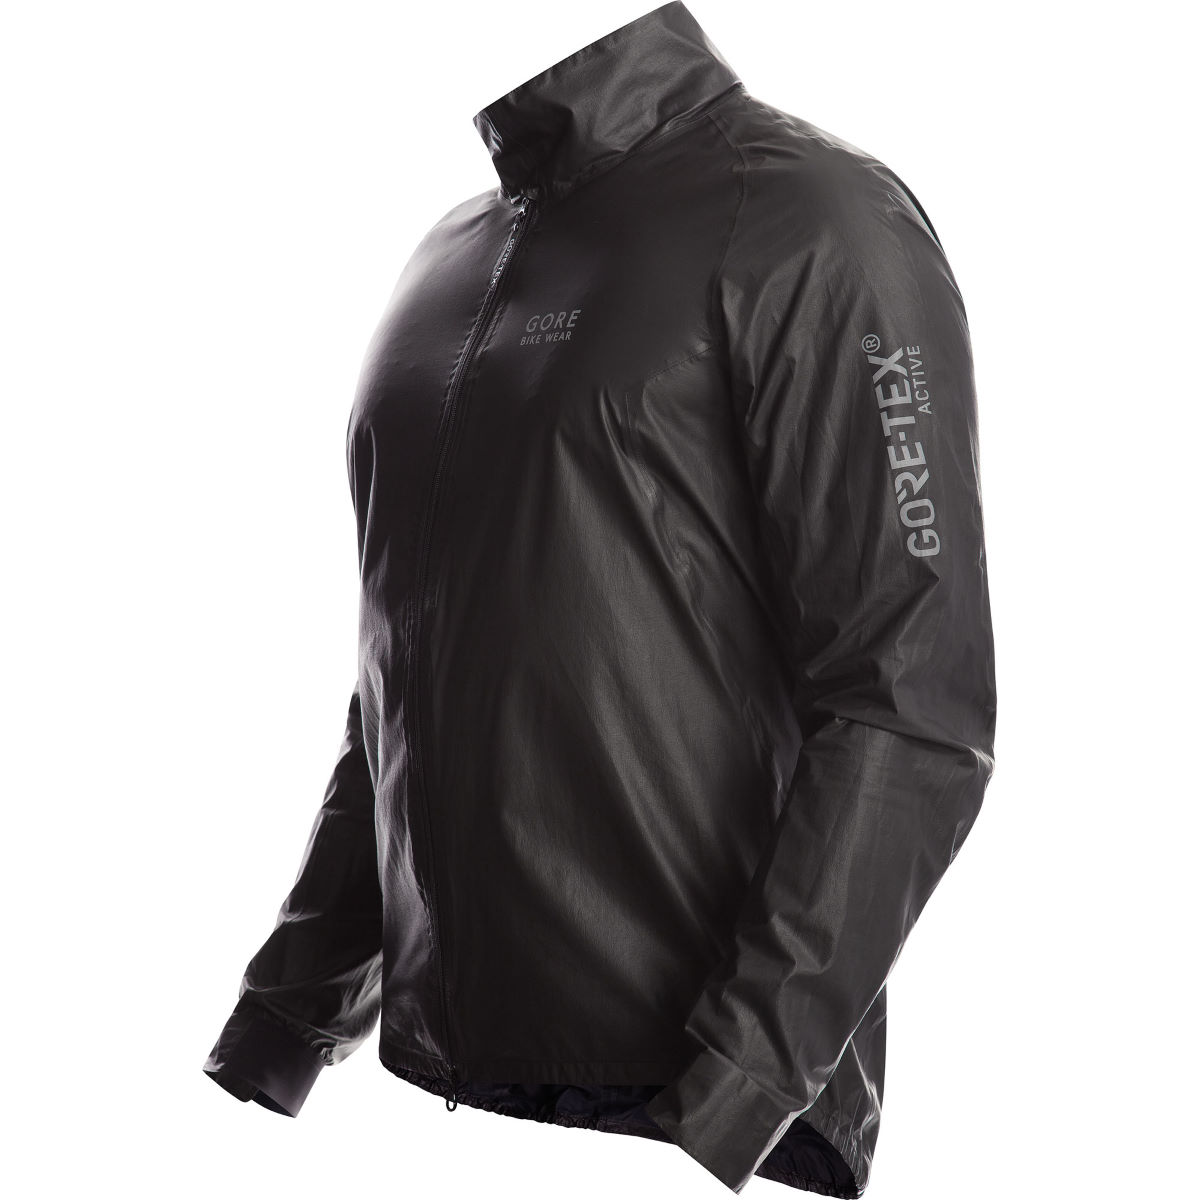 Chaqueta Gore Bike Wear ONE 1985 Gore-Tex SHAKEDRY - Impermeables - ciclismo